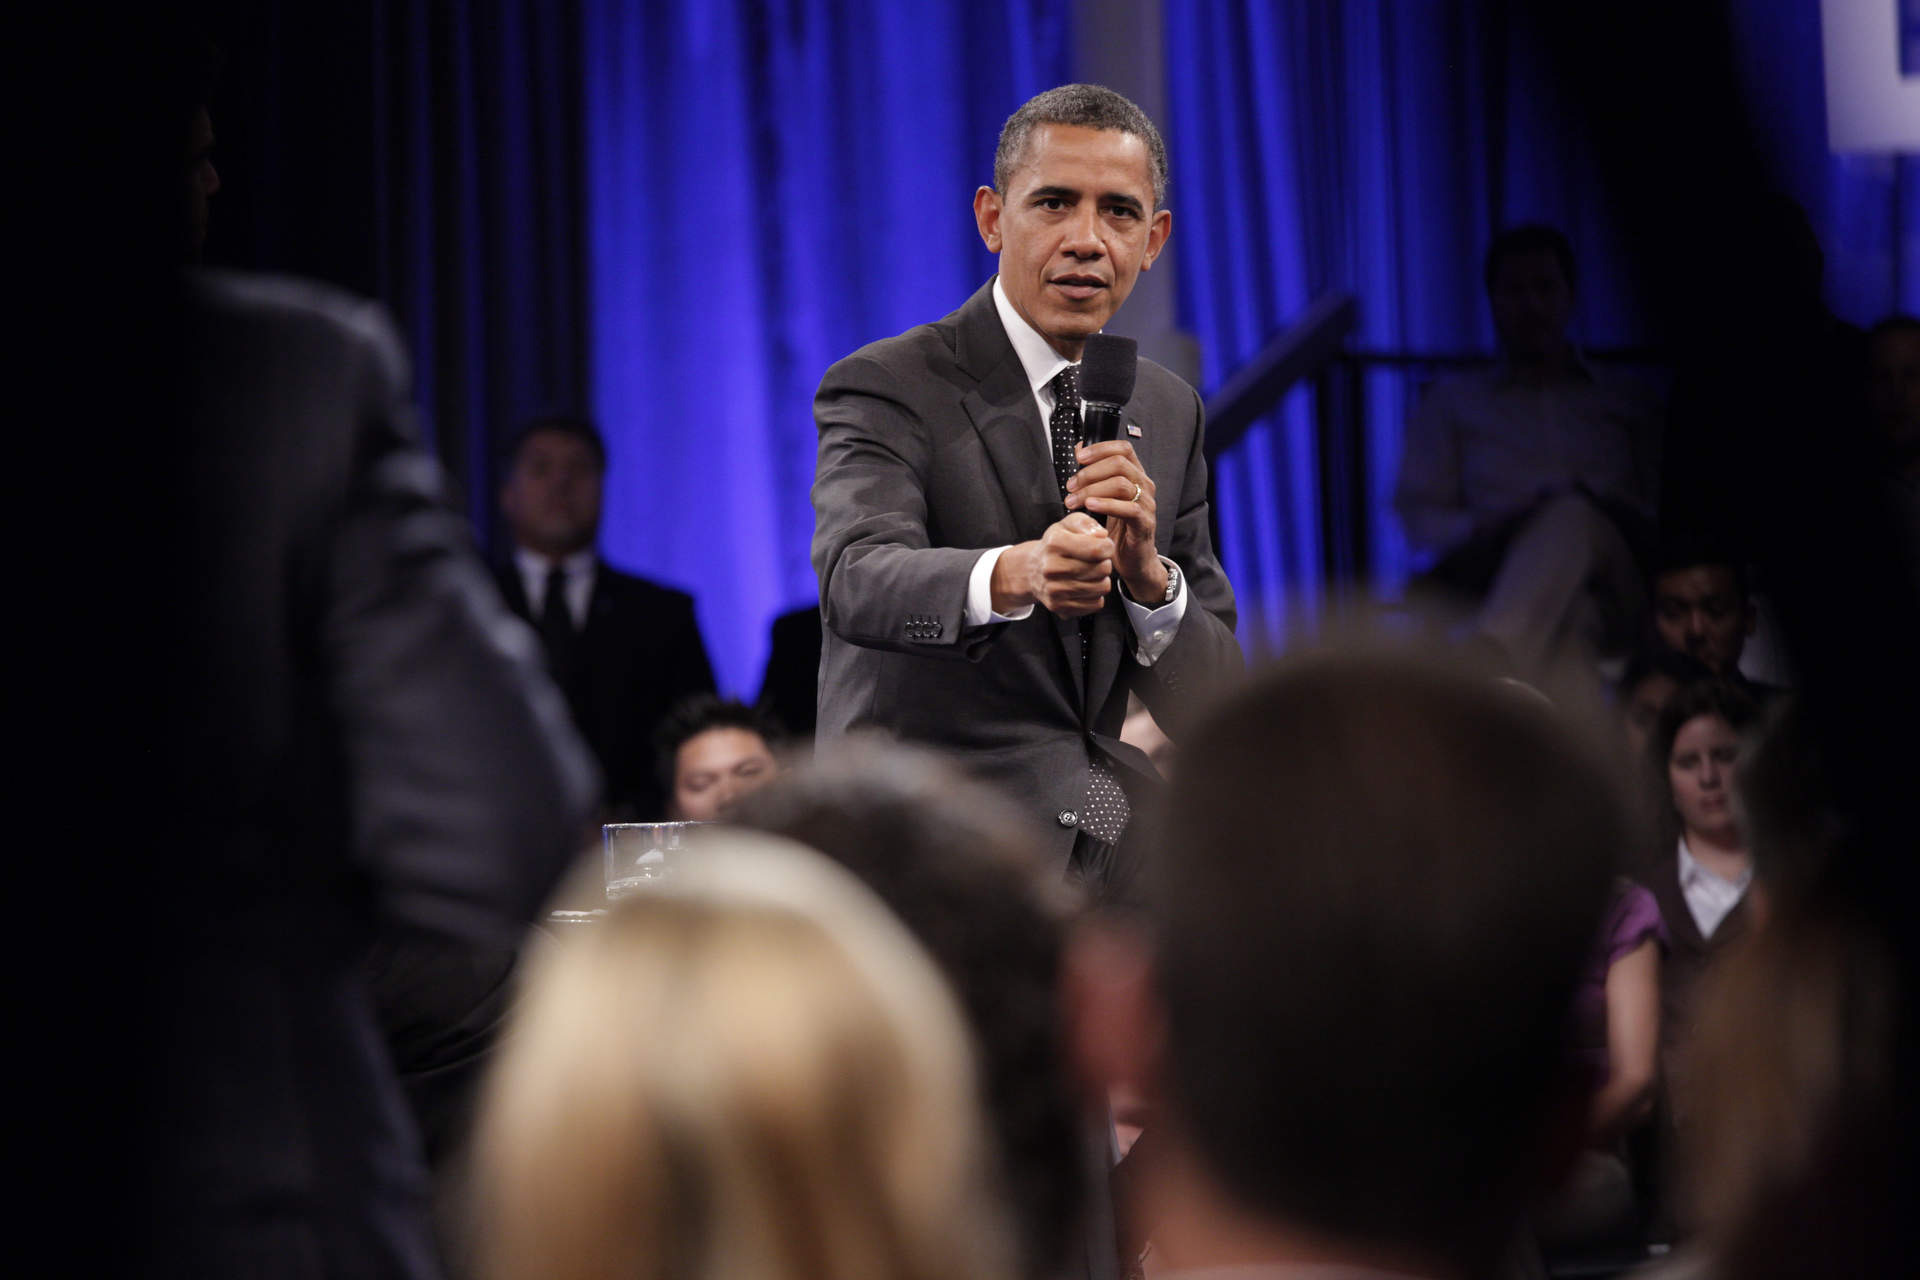 President Barack Obama answers a question during a Town Hall sponsored by LinkedIn